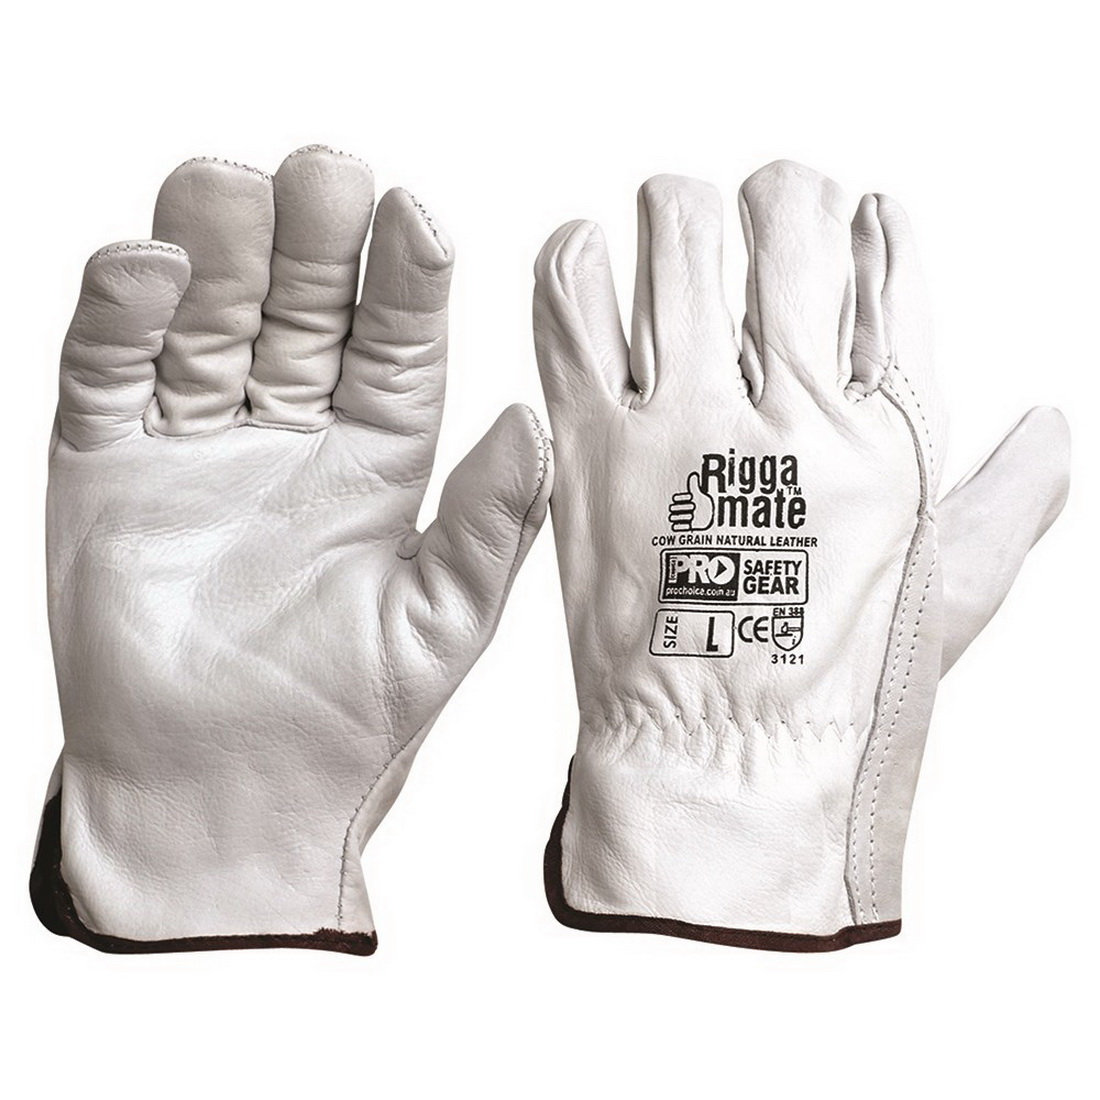 Riggamate Cow Grain Leather Glove Natural